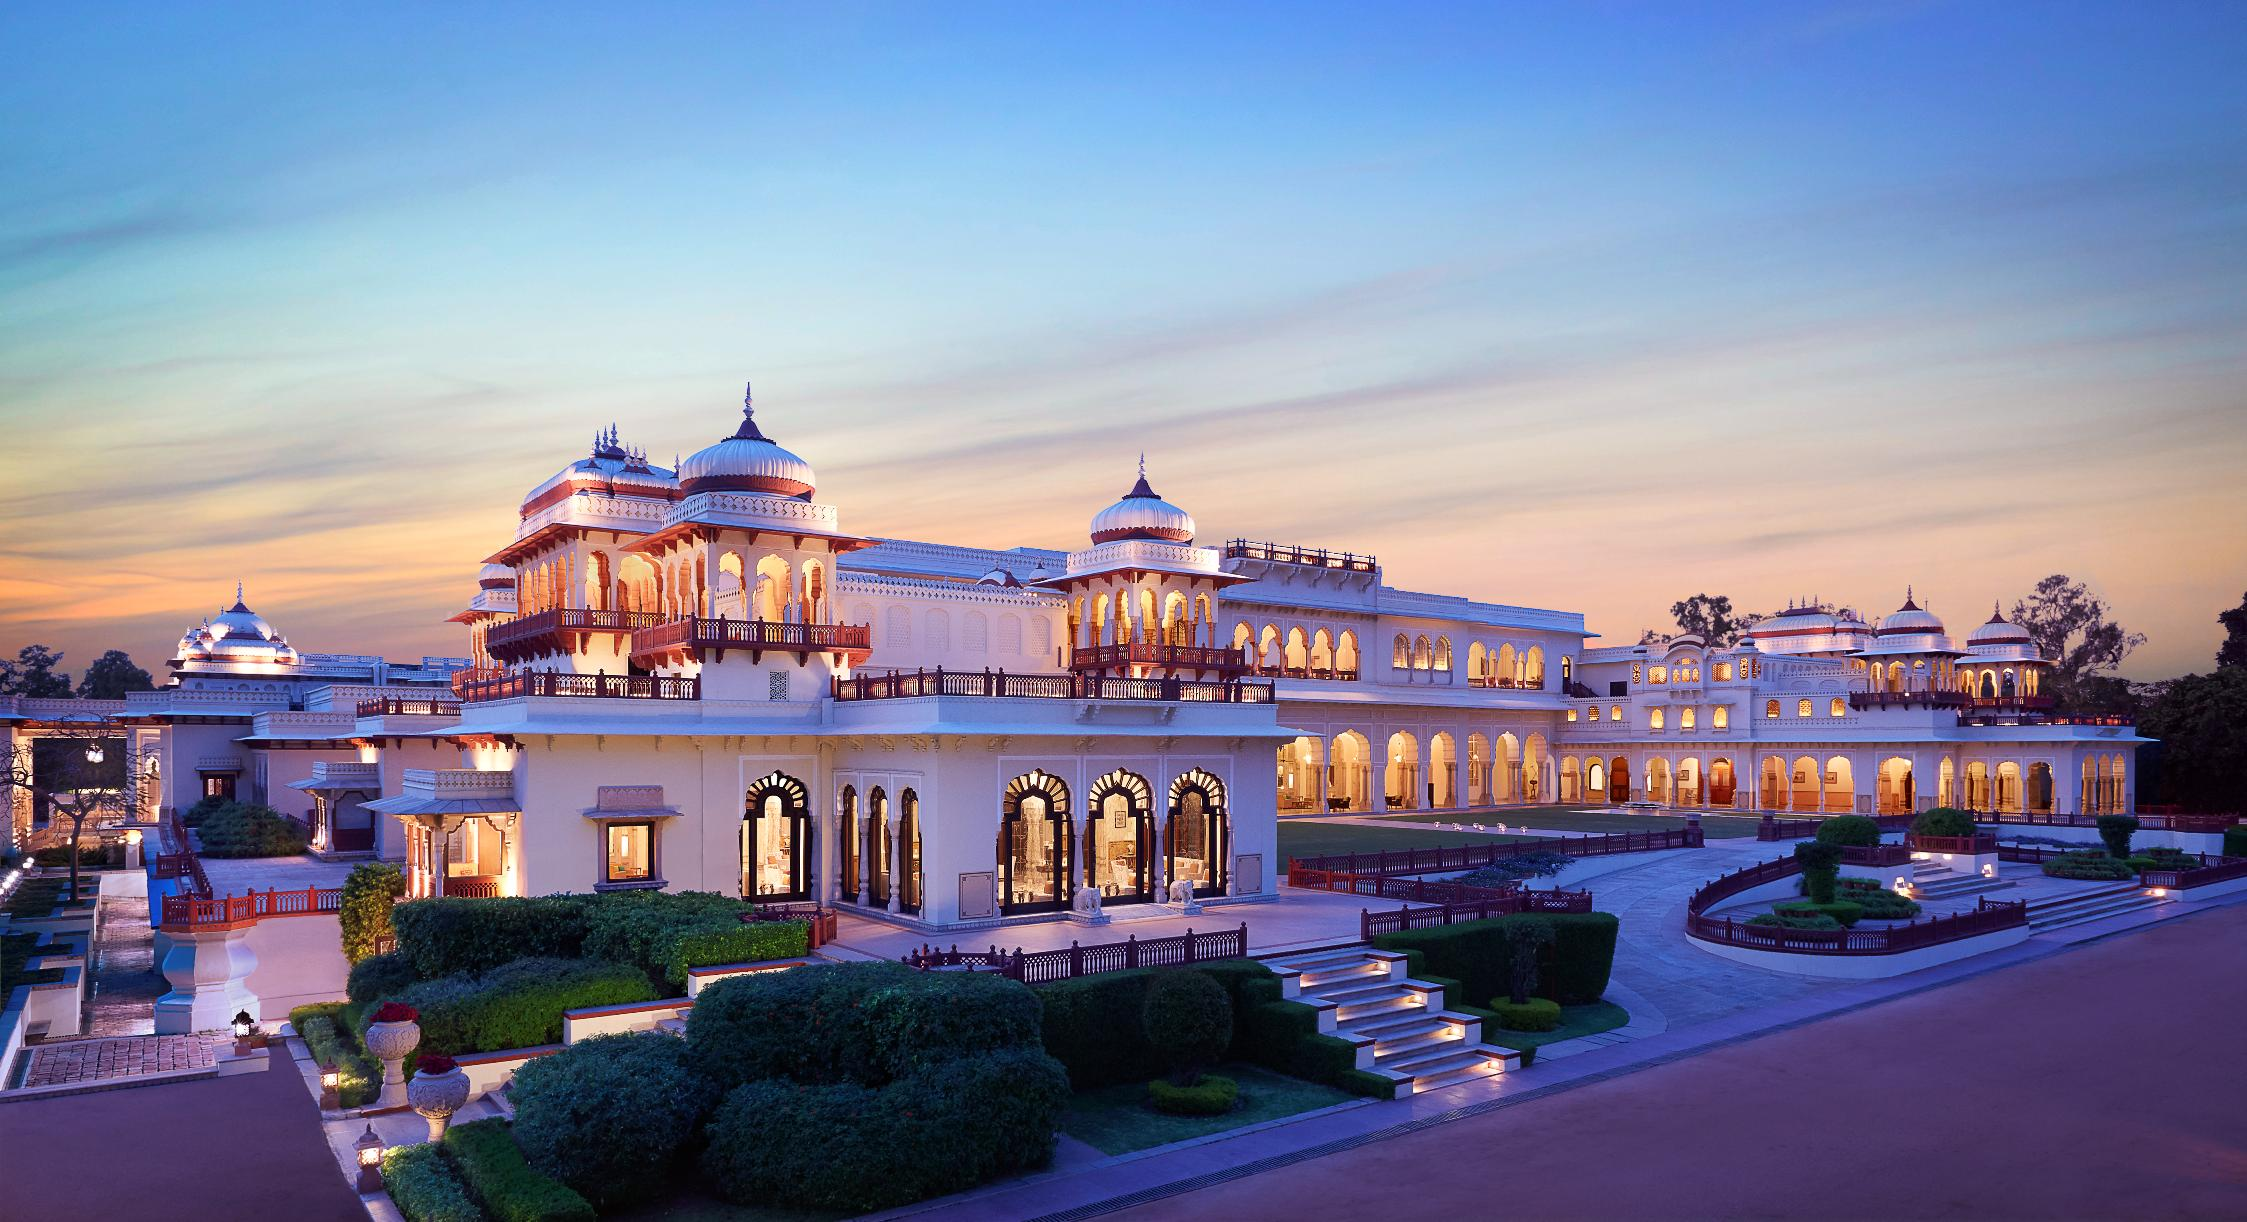 Jaipur's Rambagh Palace ranks among top 50 hotels of the world as listed by Travel + Leisure